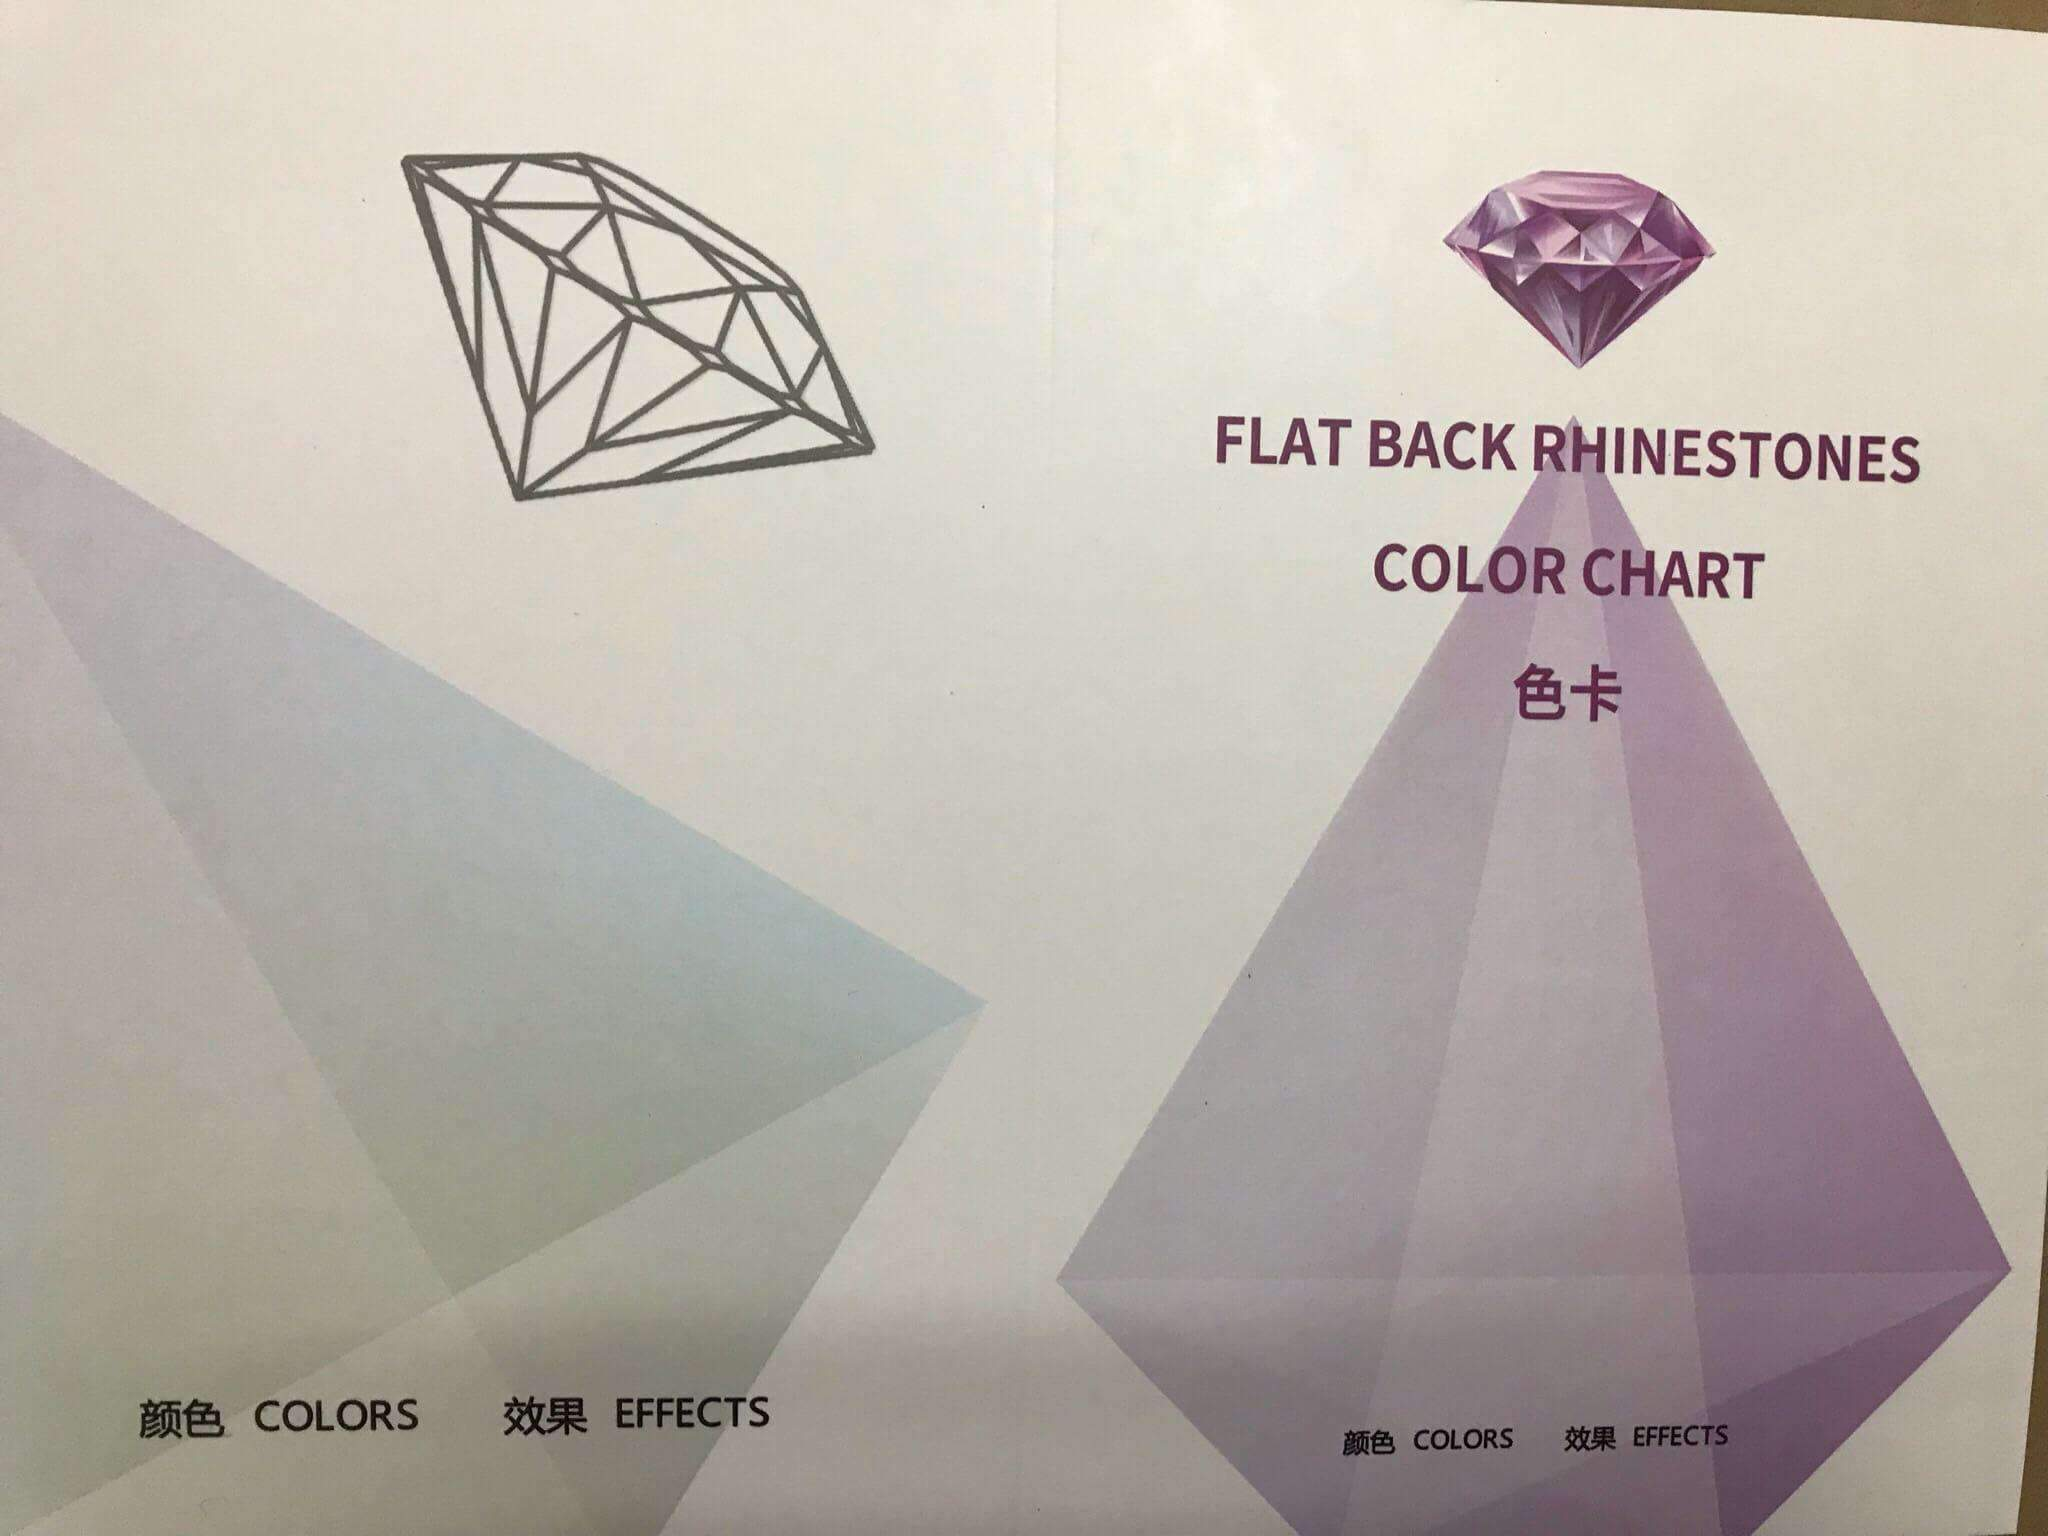 Glass Flat Back Rhinestones Color Chart -8 Big 8 Small - WholesaleRhinestone